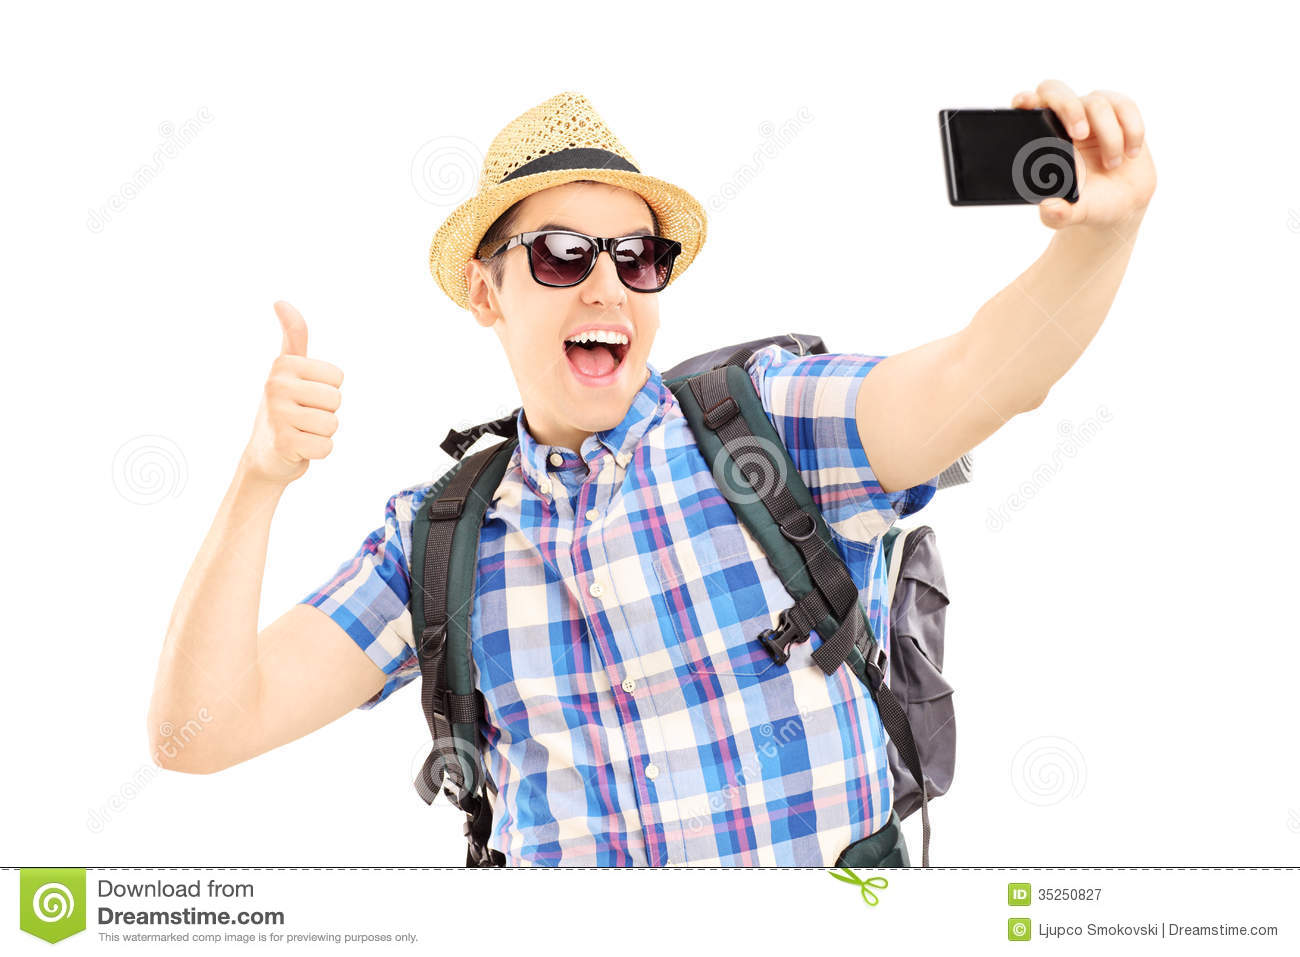 Male Tourist Taking Pictures Of Himselves With Phone And